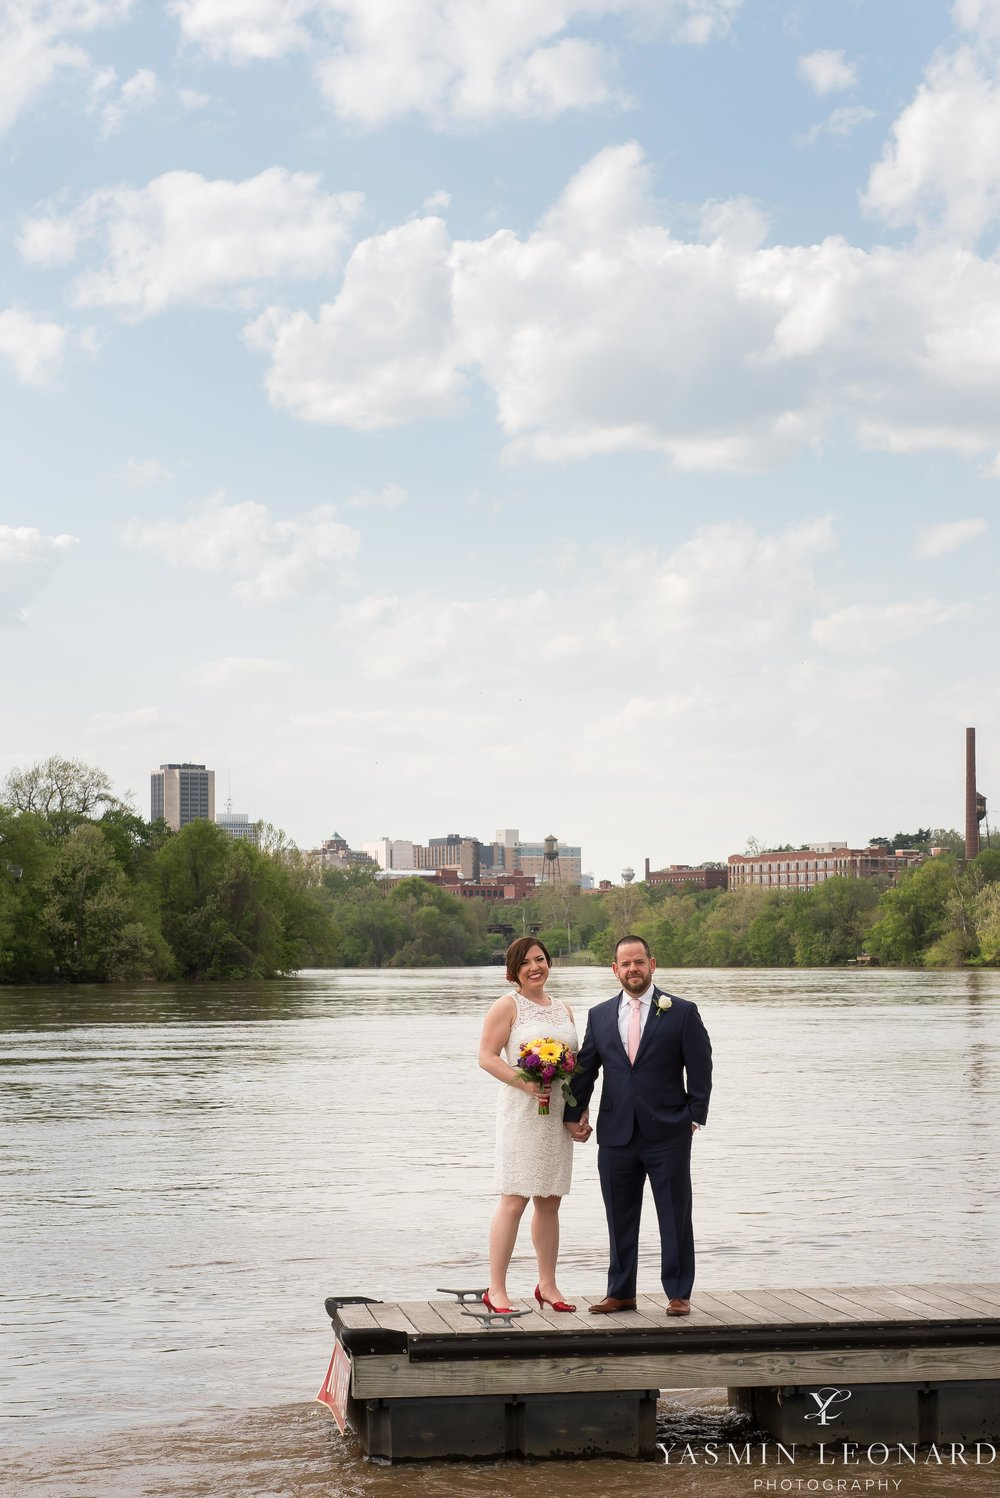 The Boathouse - The boathouse weddings - RVA Weddings - Richmond VA - Richmond VA Weddings - The Boathouse Weddings-29.jpg